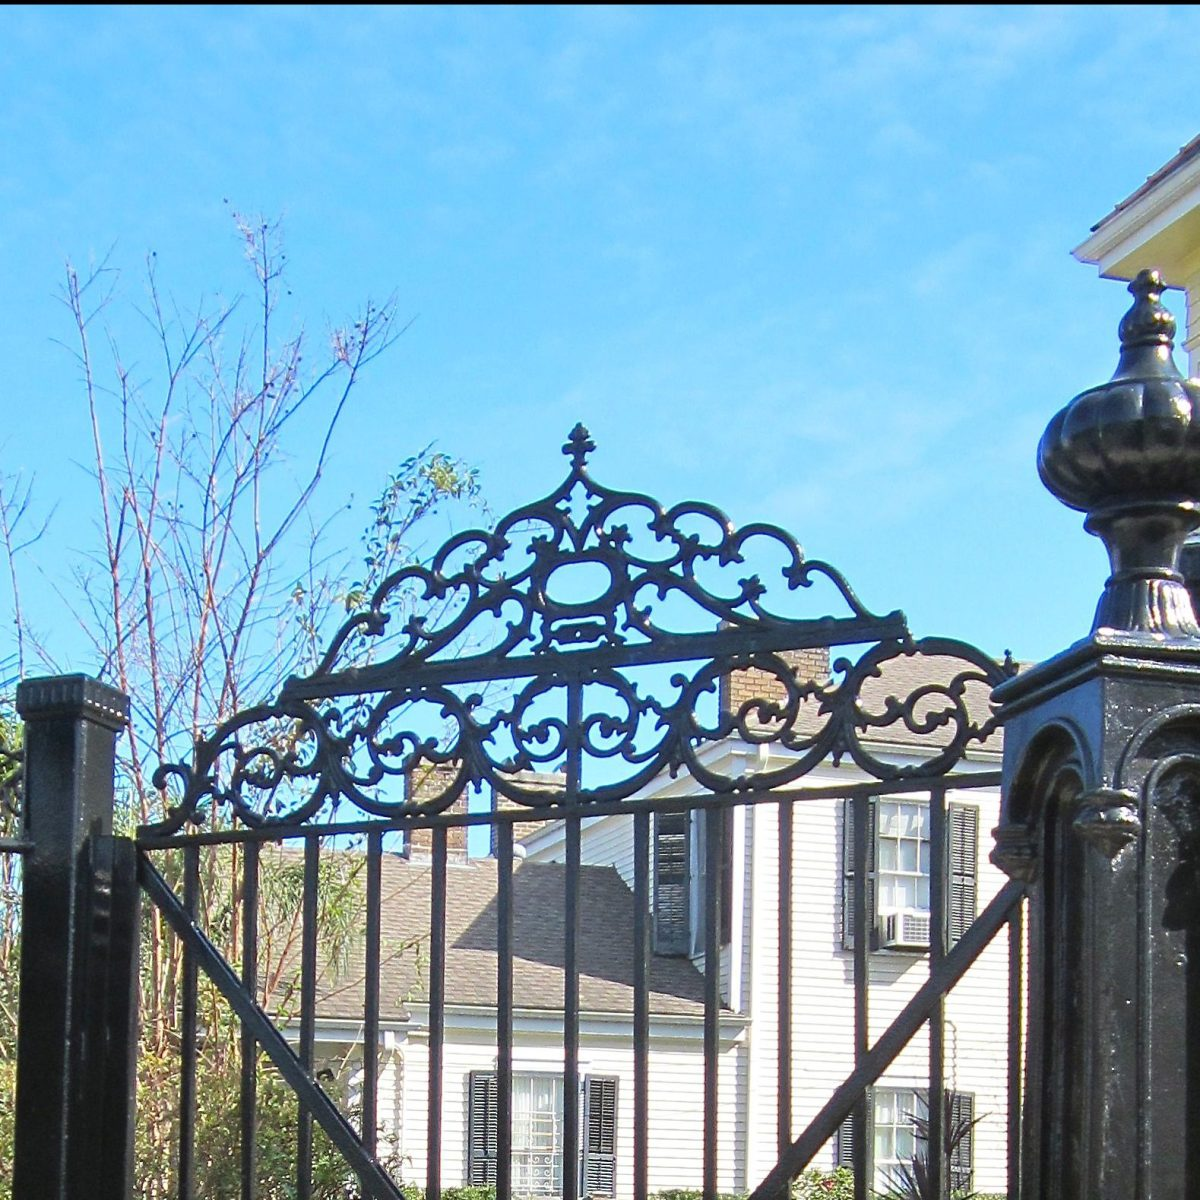 The Garden District vs. The French Quarter: A Clash of Cultures Preserved in Architecture